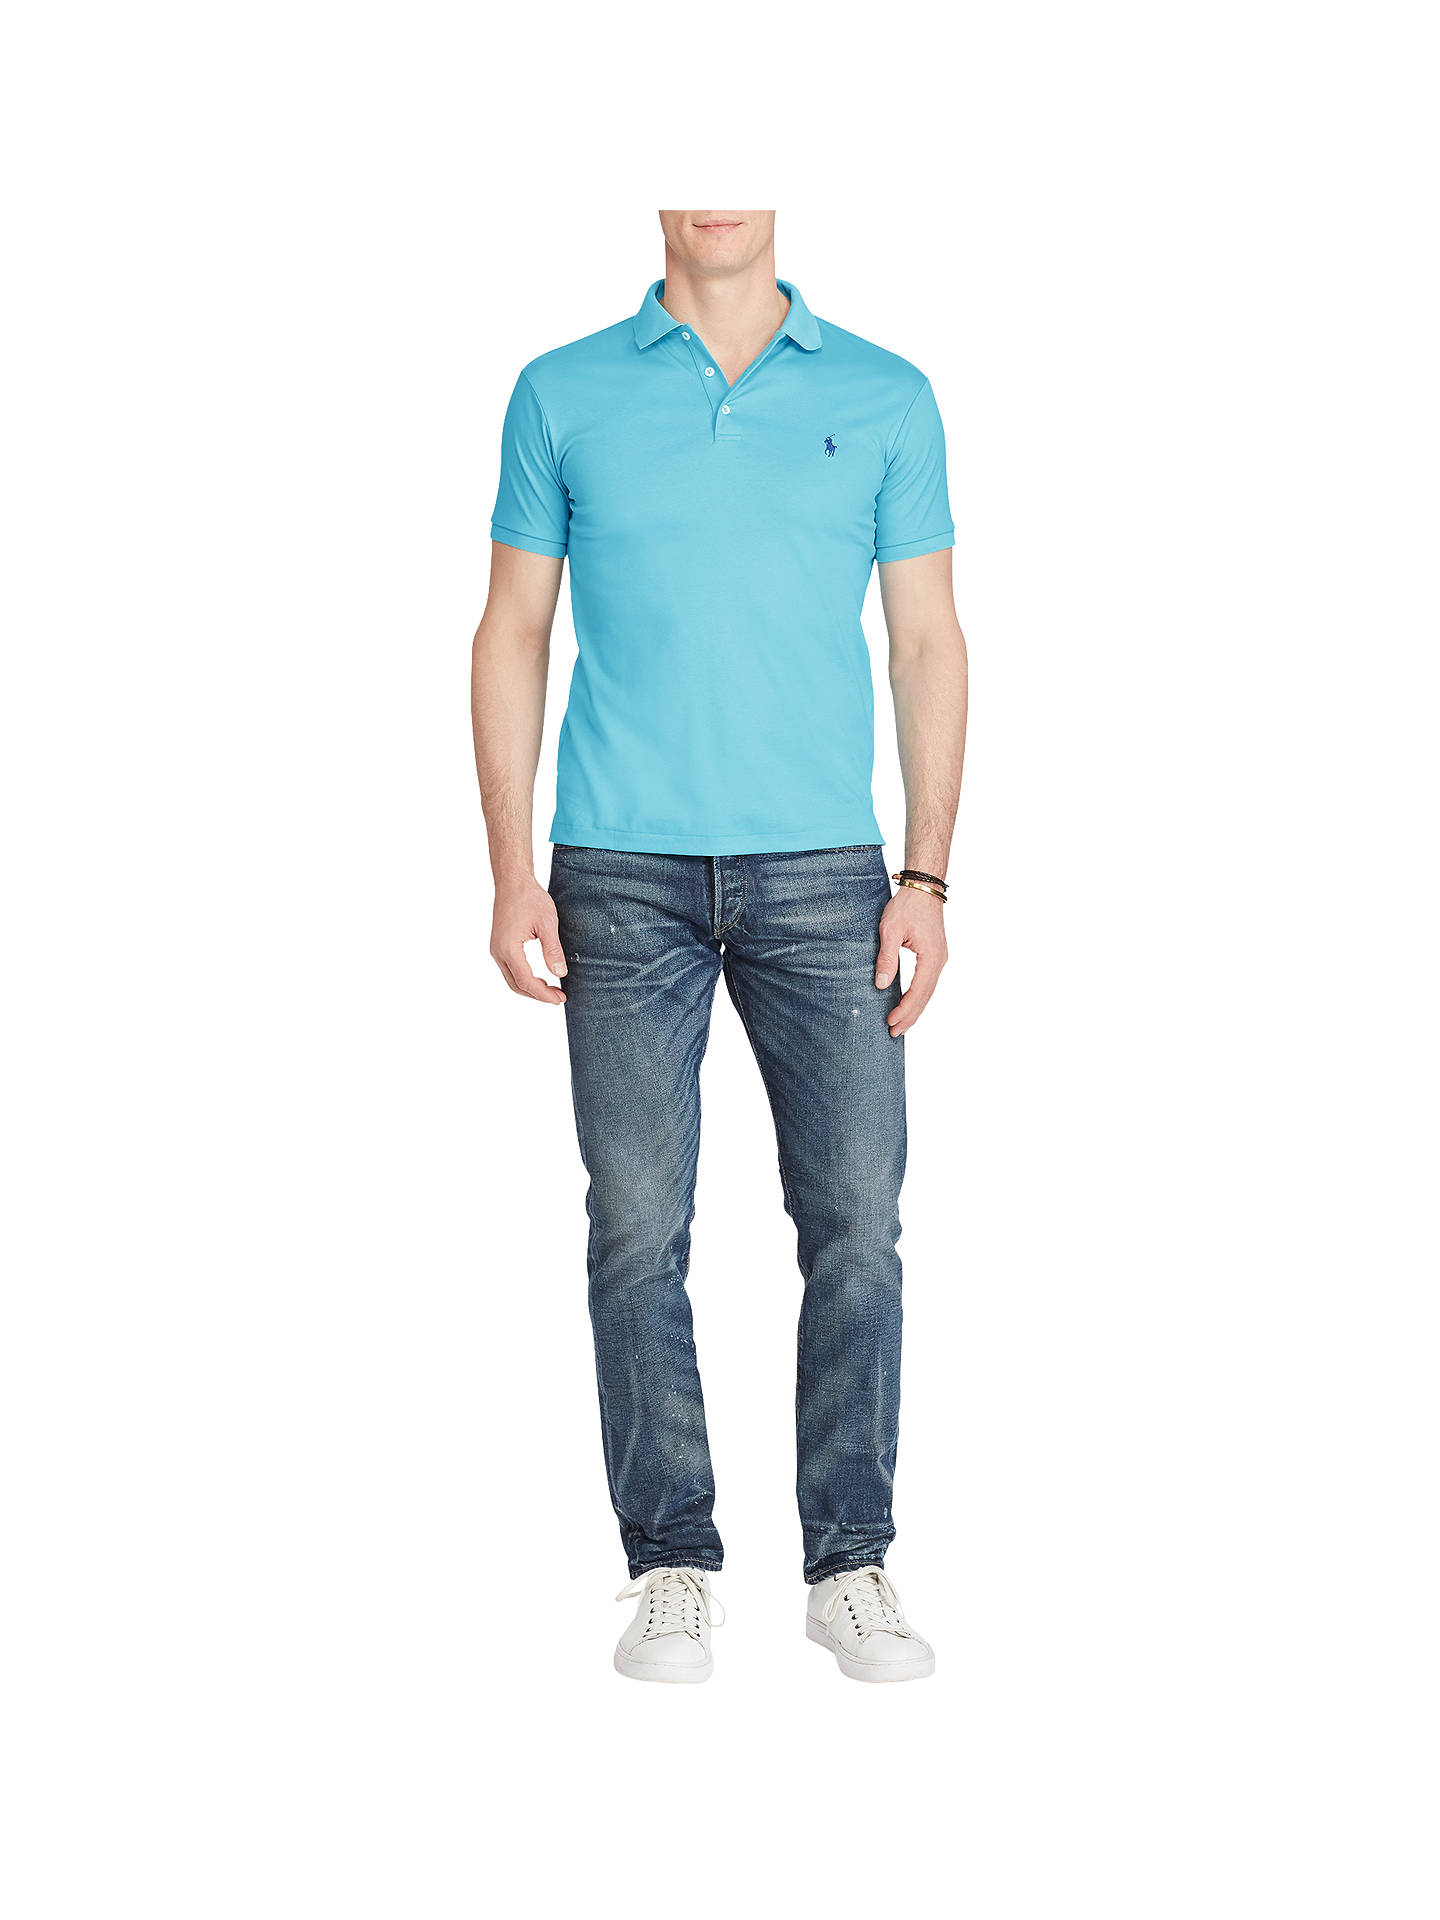 At Lauren Slim Touch Soft Ralph Polo Lewis Shirt John Fit WHEDY9I2